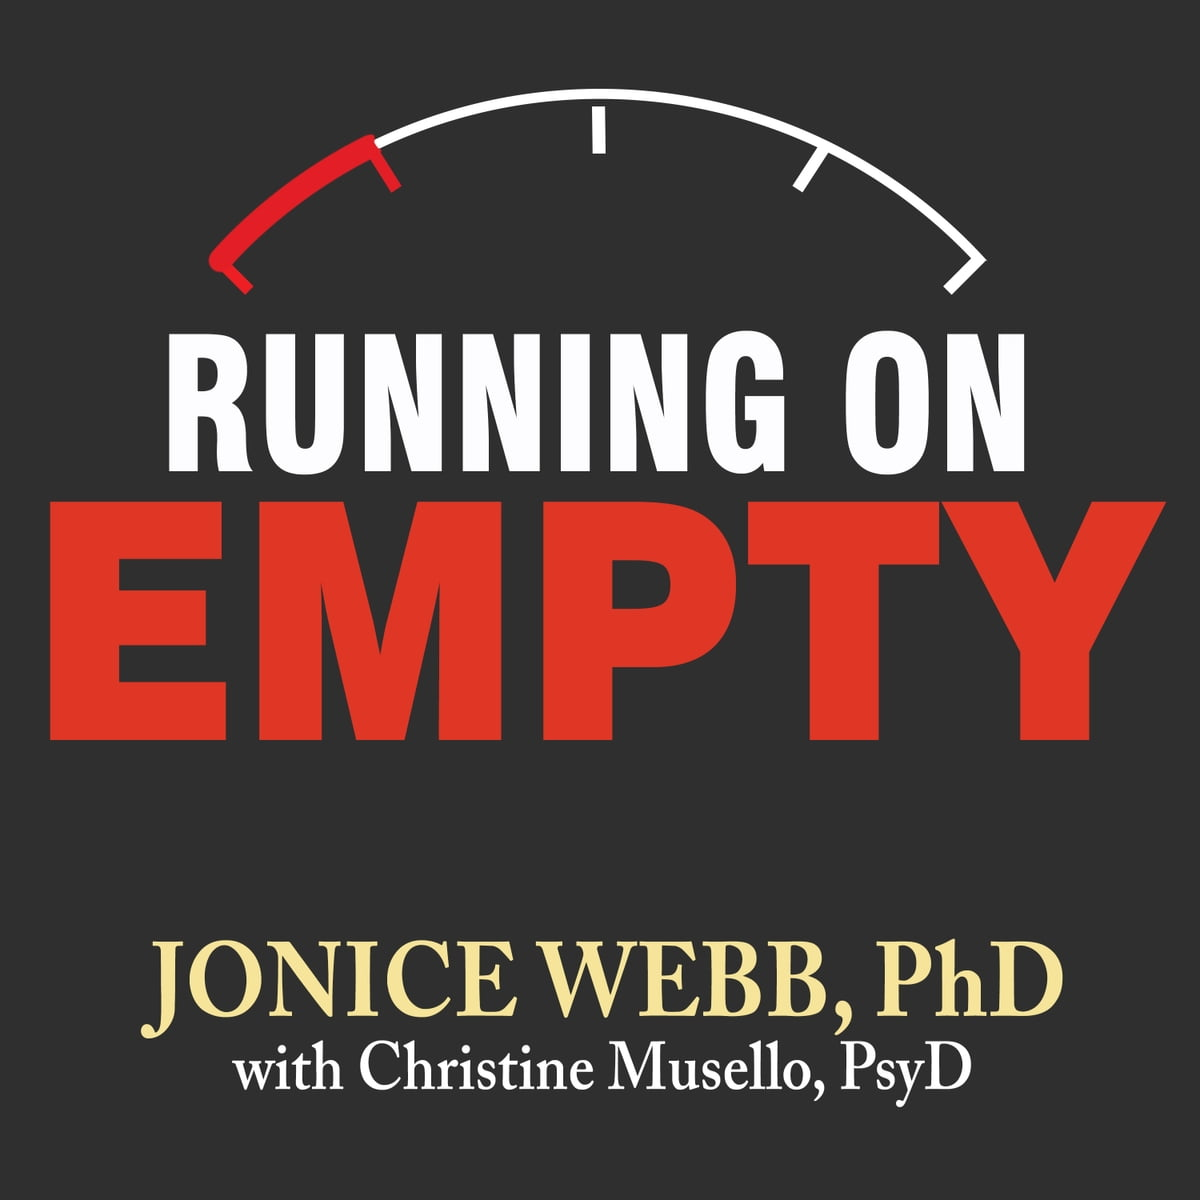 running on empty book jonice webb pdf